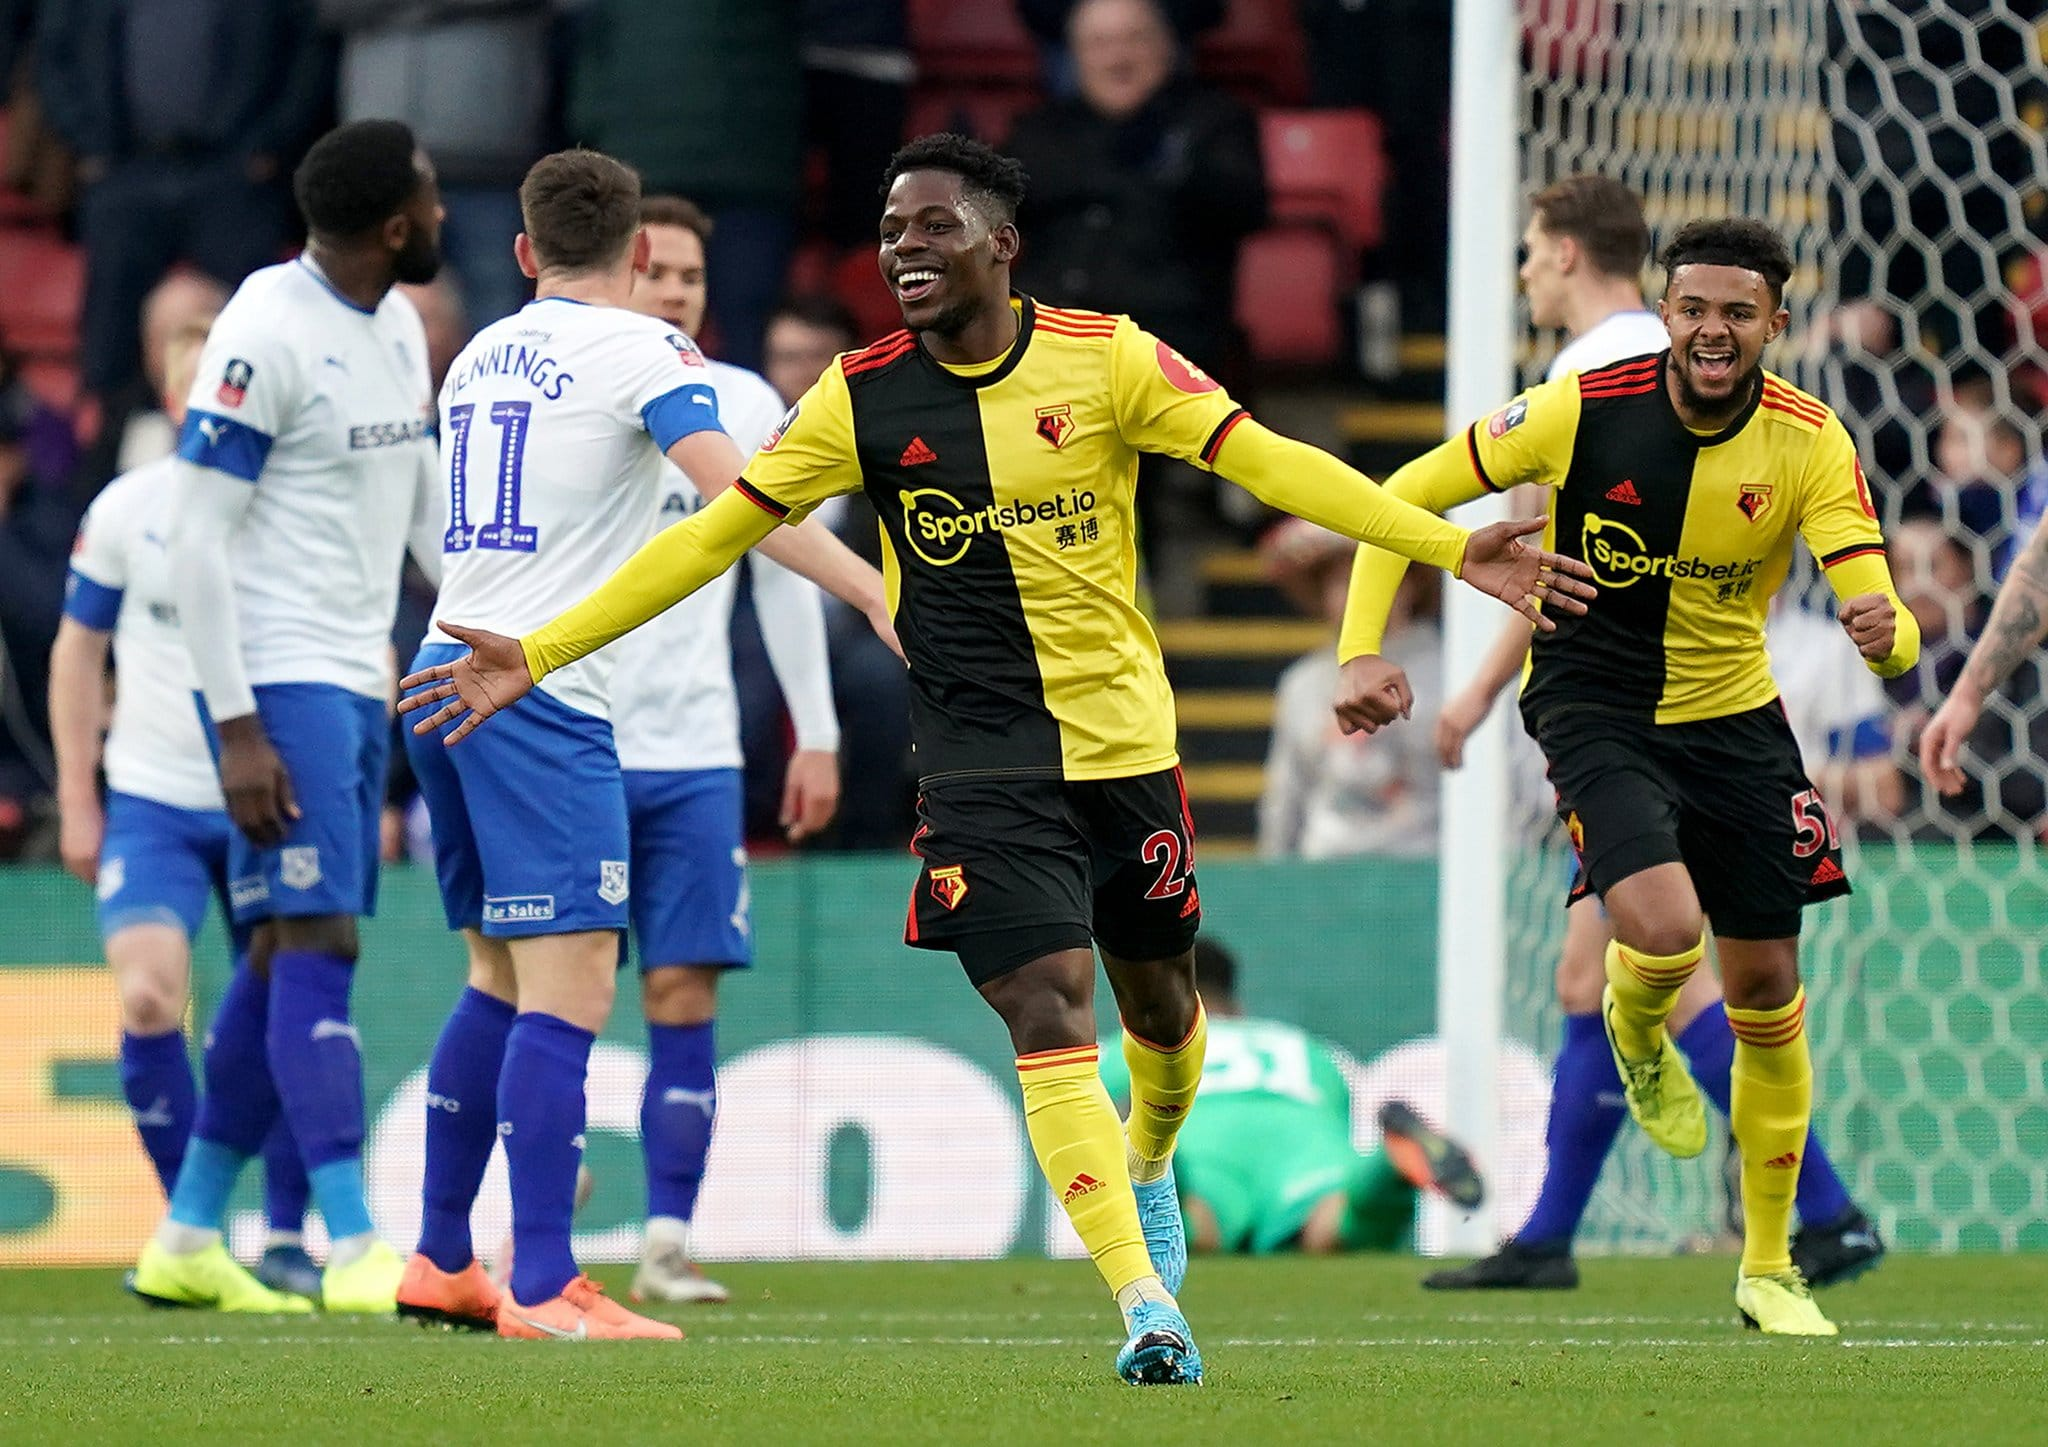 Dele-Bashiru Delighted To Score For Watford  After Recovering From Injury